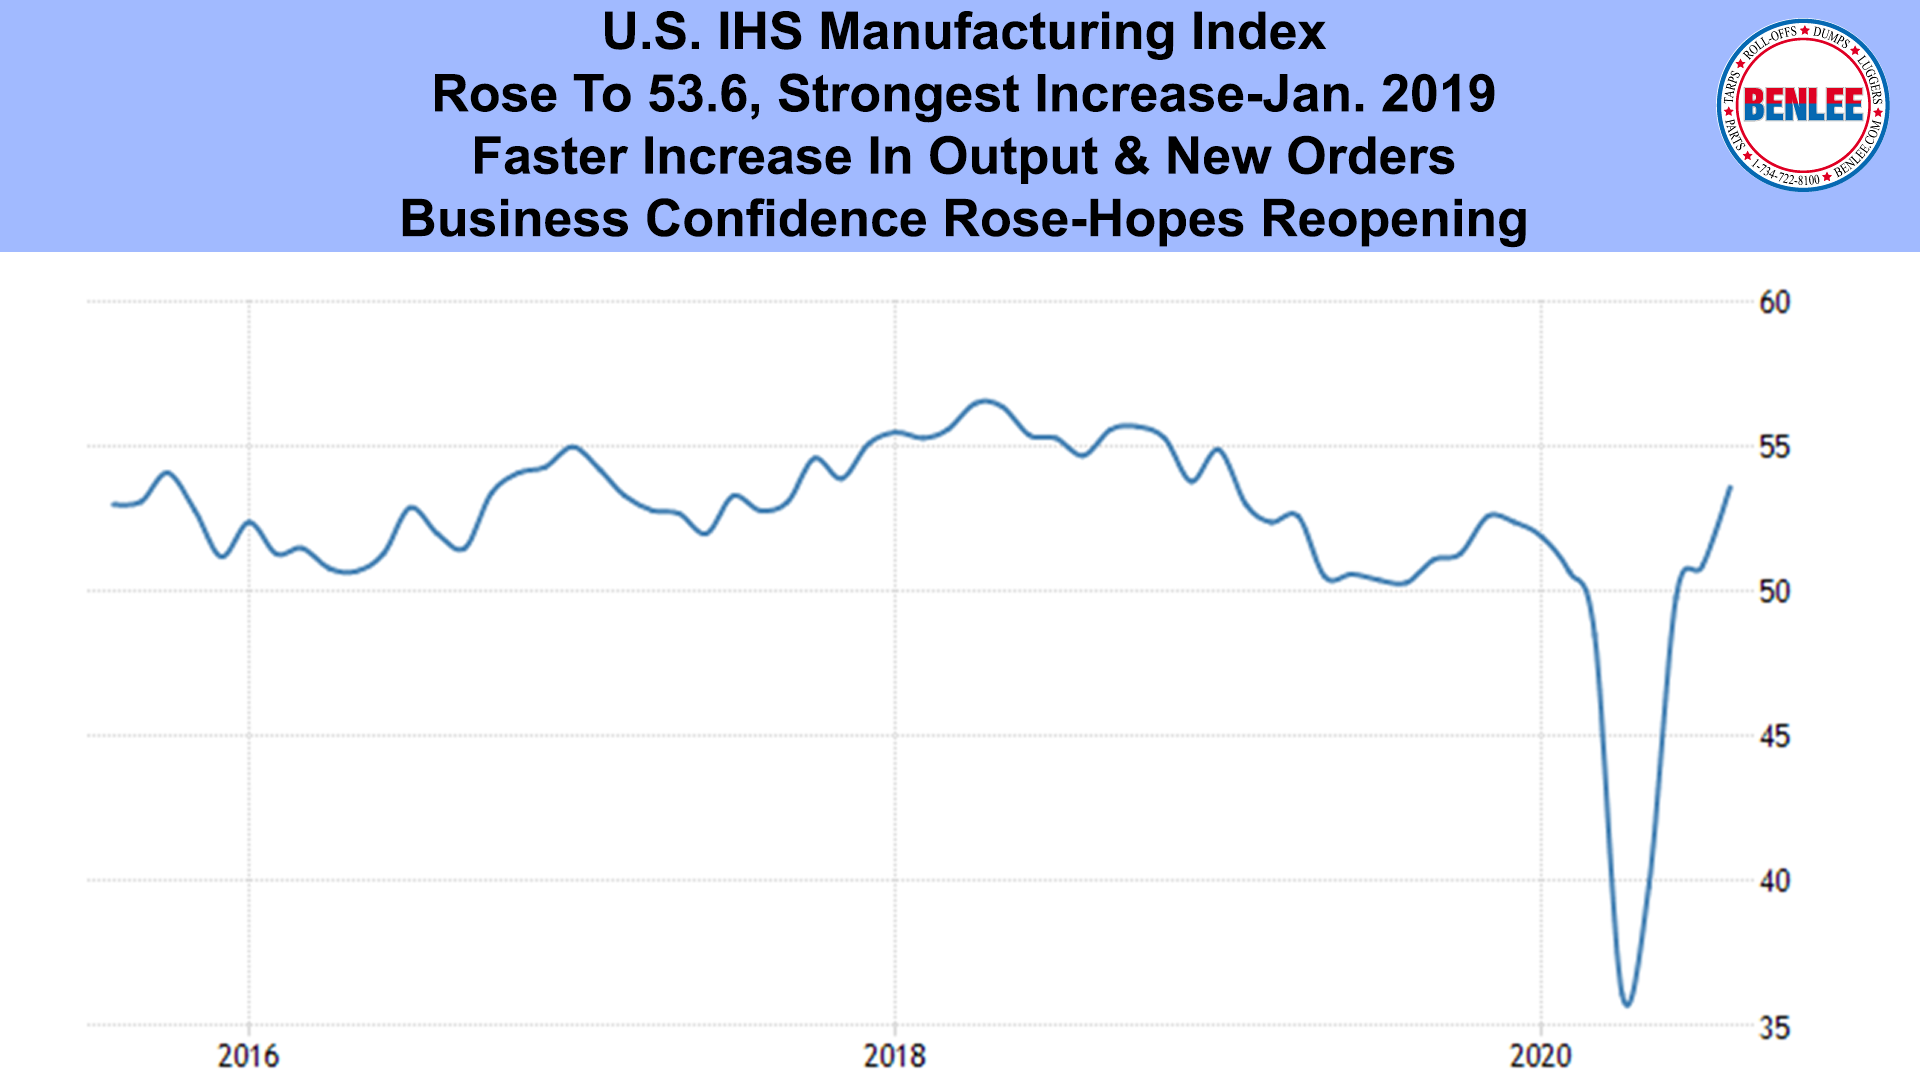 U.S. IHS Manufacturing Index